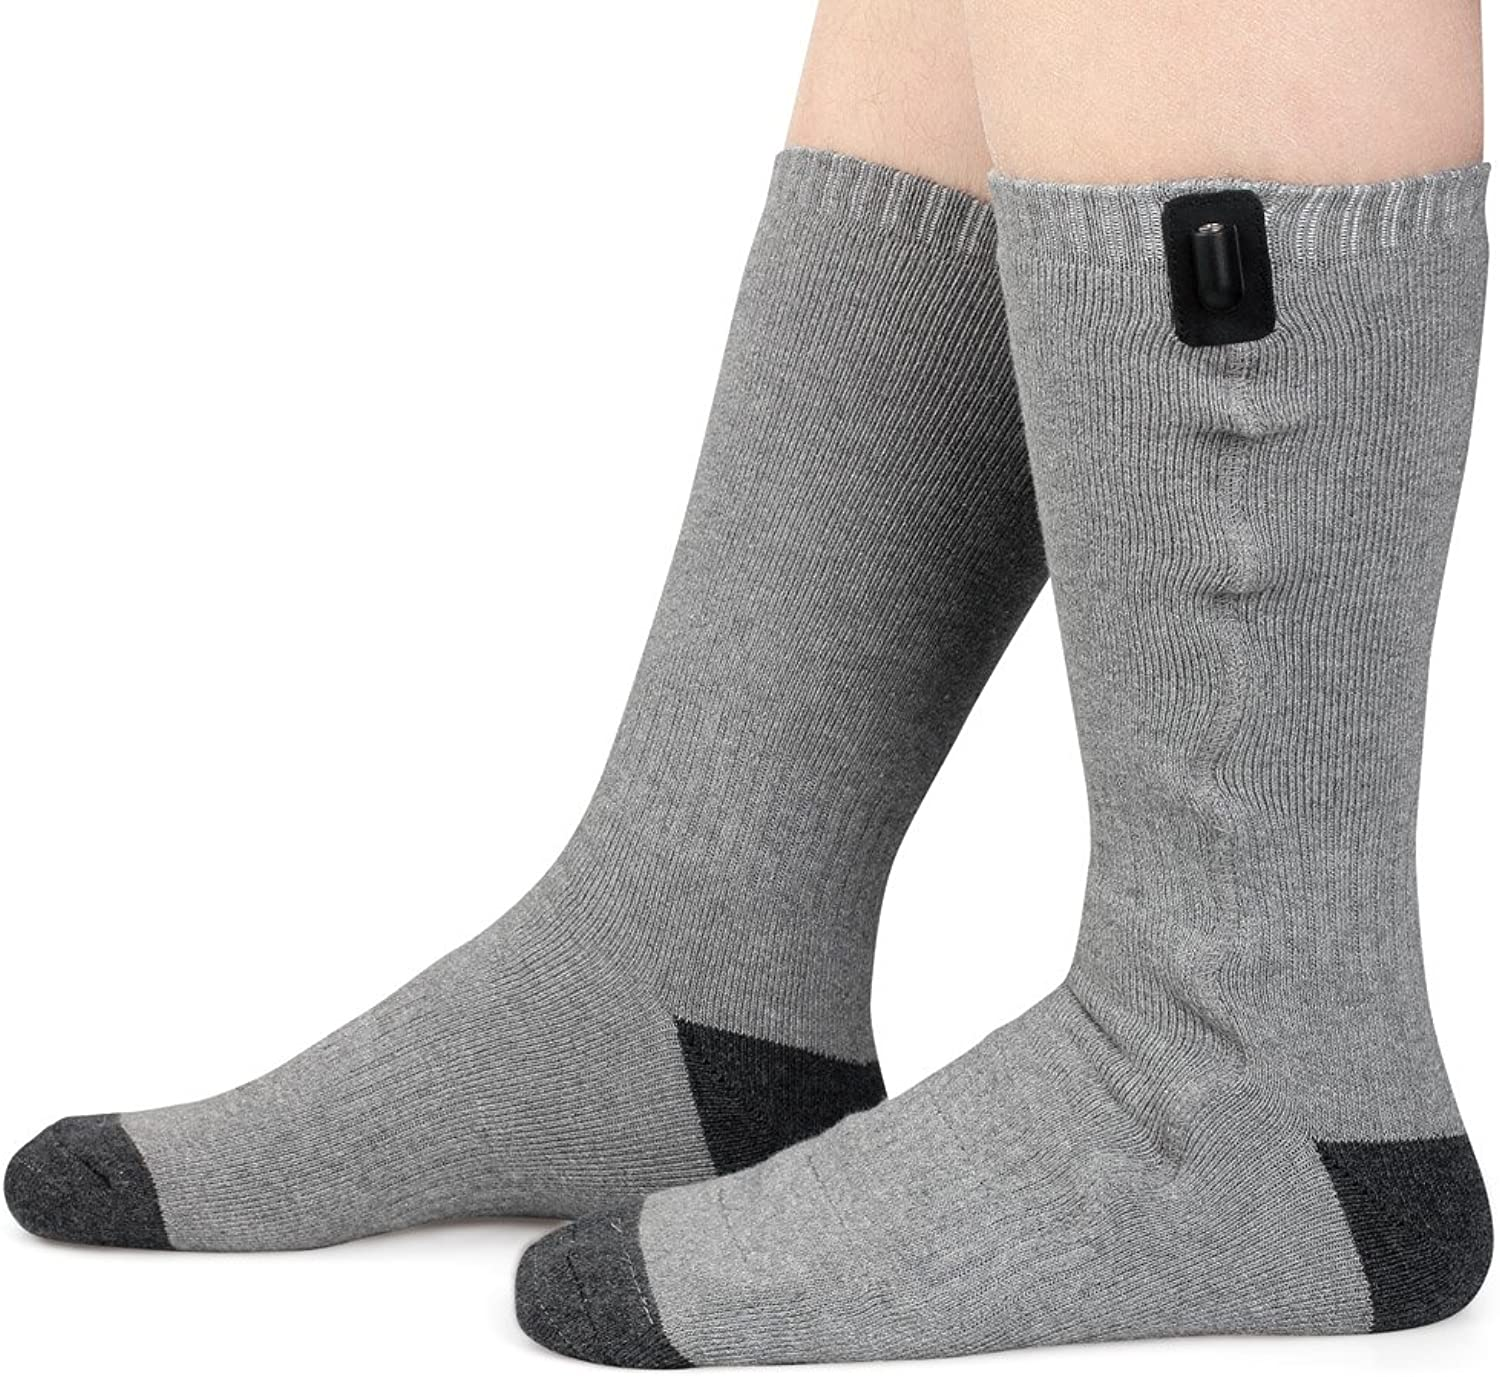 Prosmart Heated Socks with USB Connector Washable Foot Warmer(Unisex)